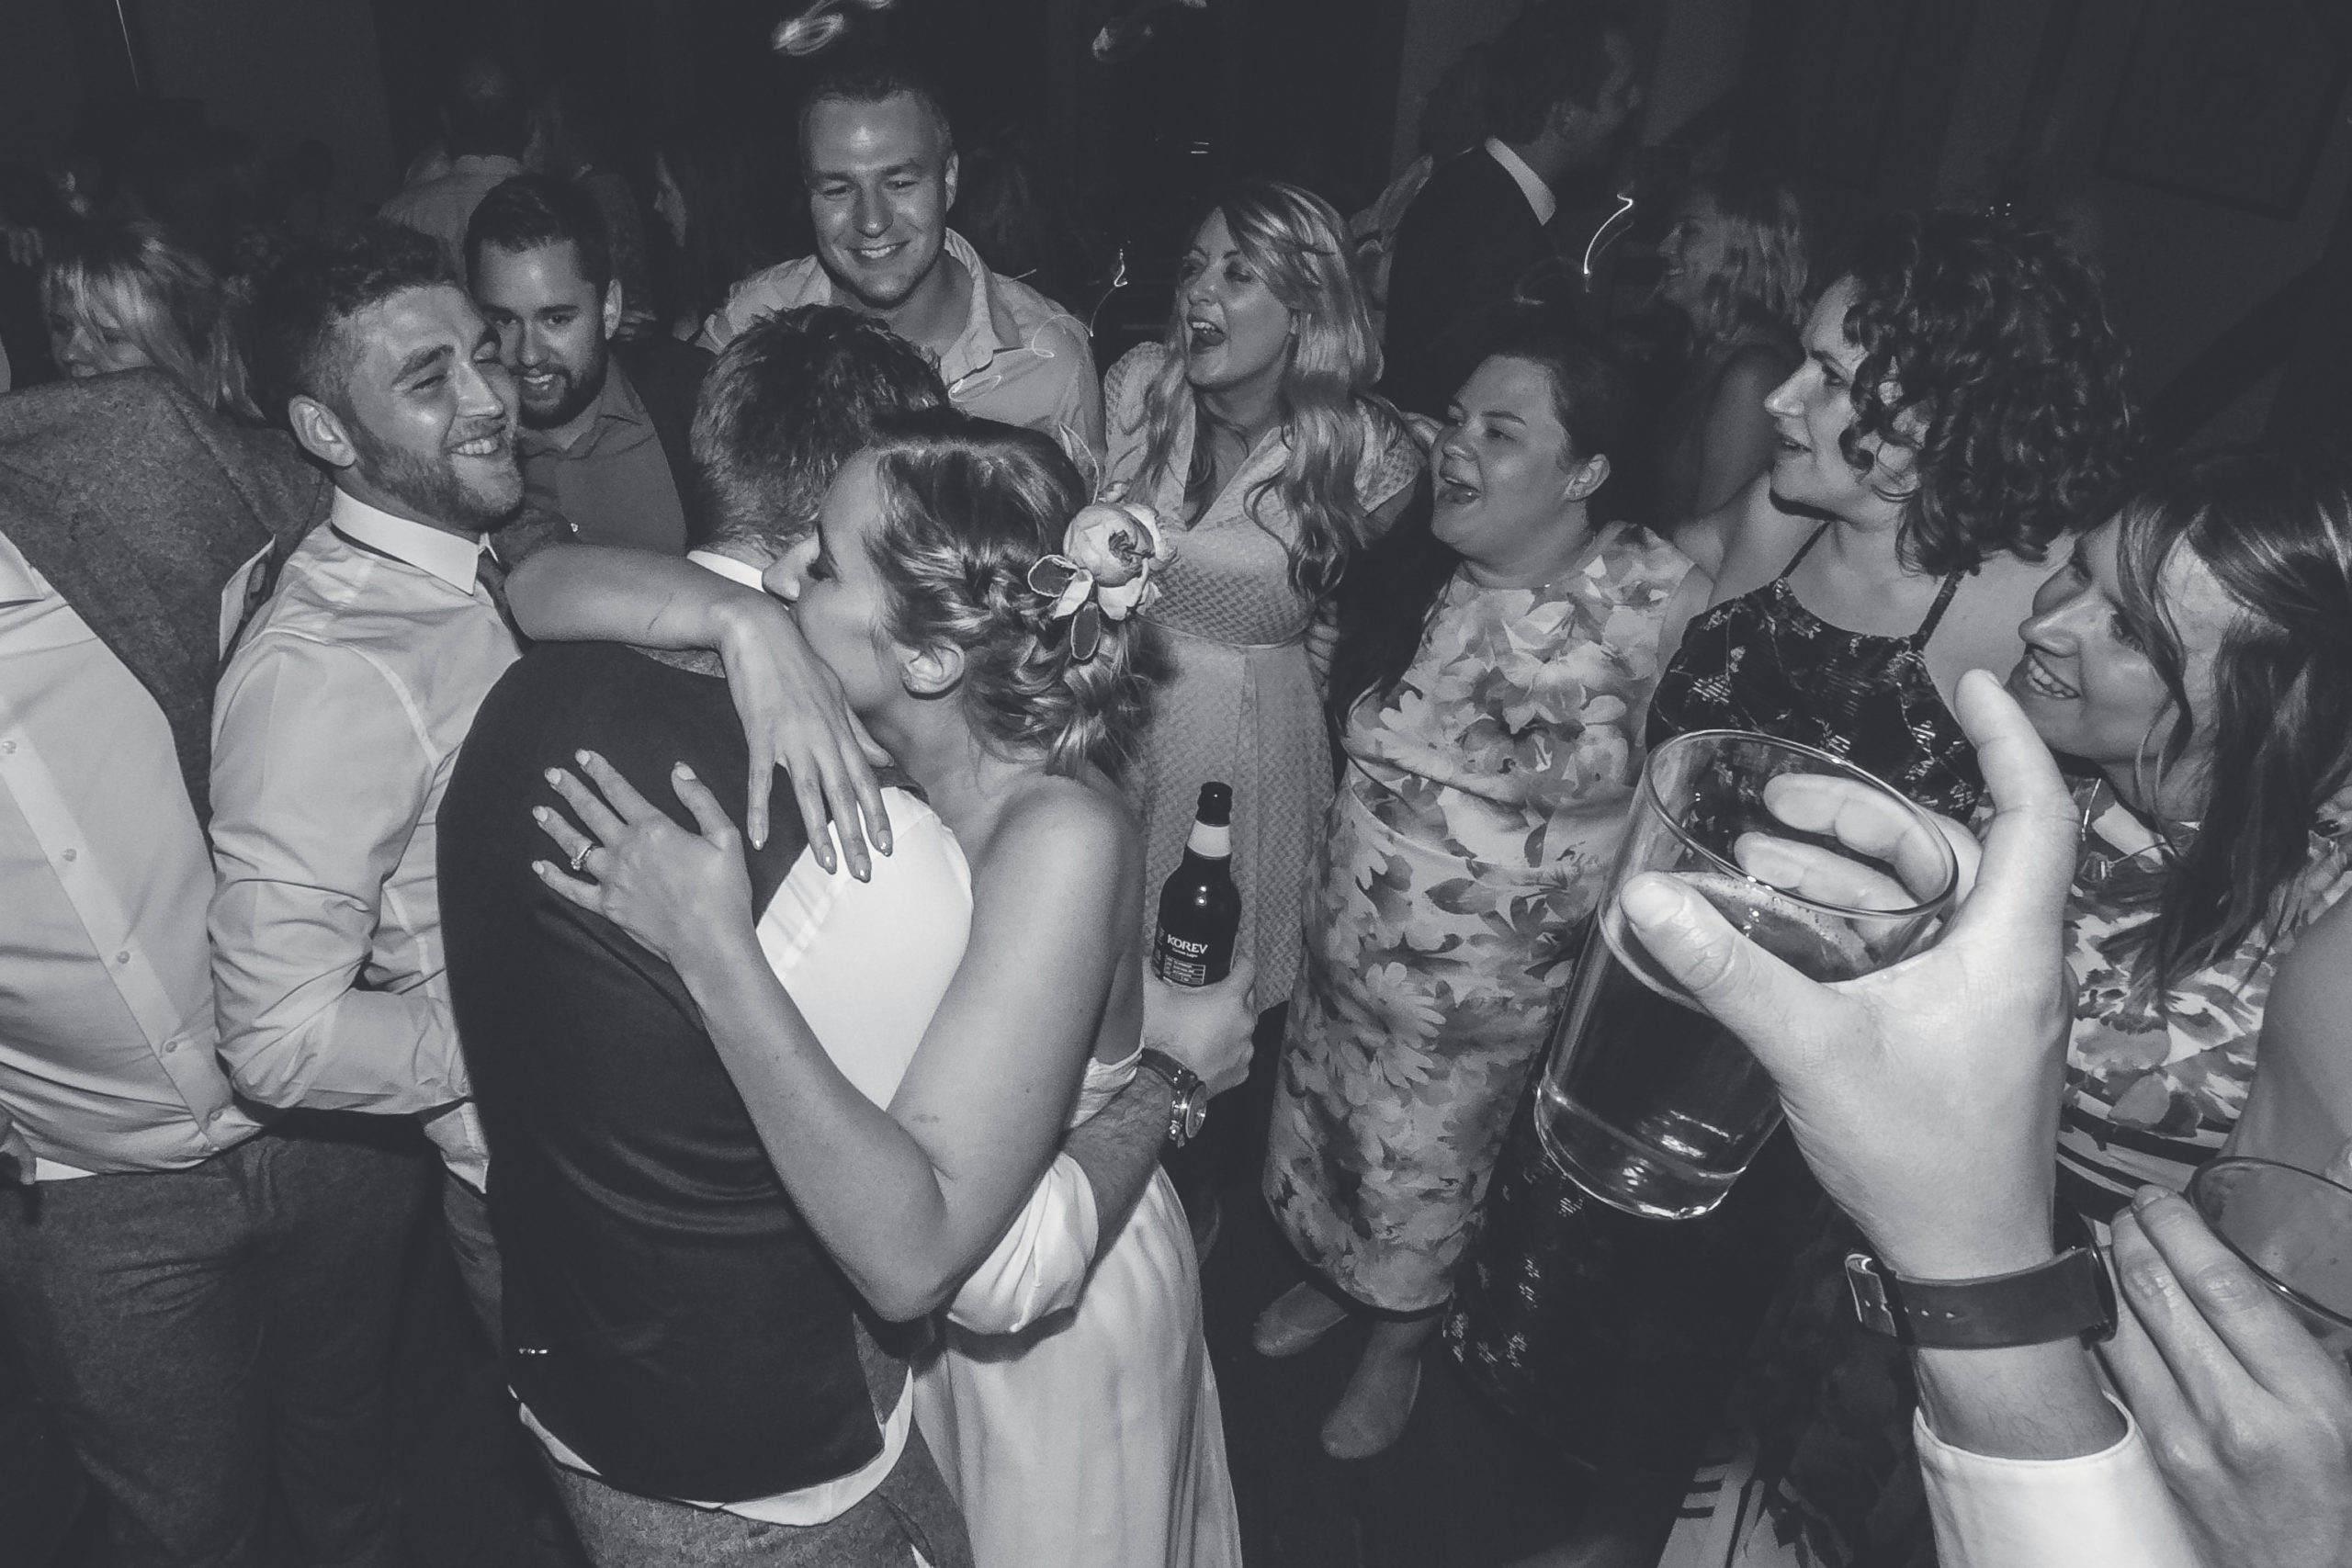 Couples embrace at the end of a wedding